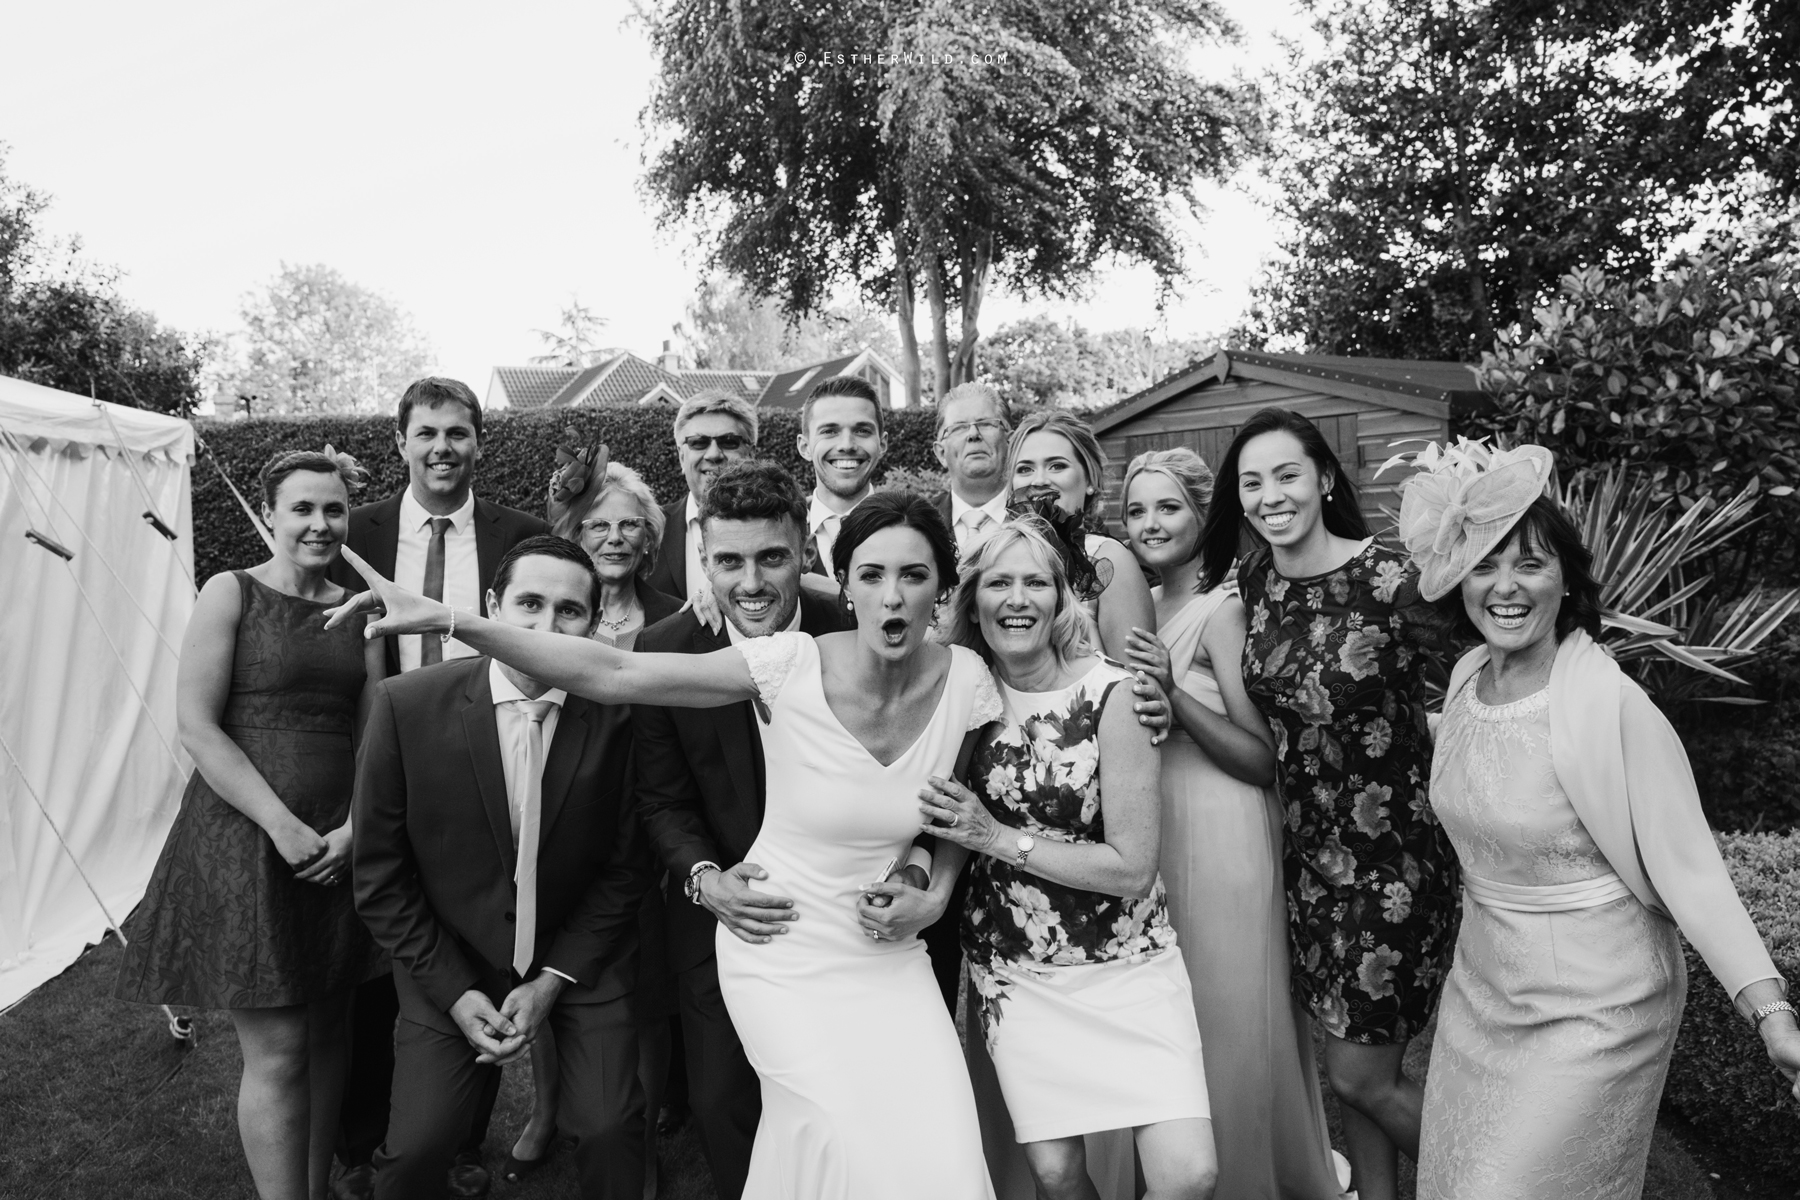 Wootton_Wedding_Copyright_Esther_Wild_Photographer_IMG_2213-1.jpg